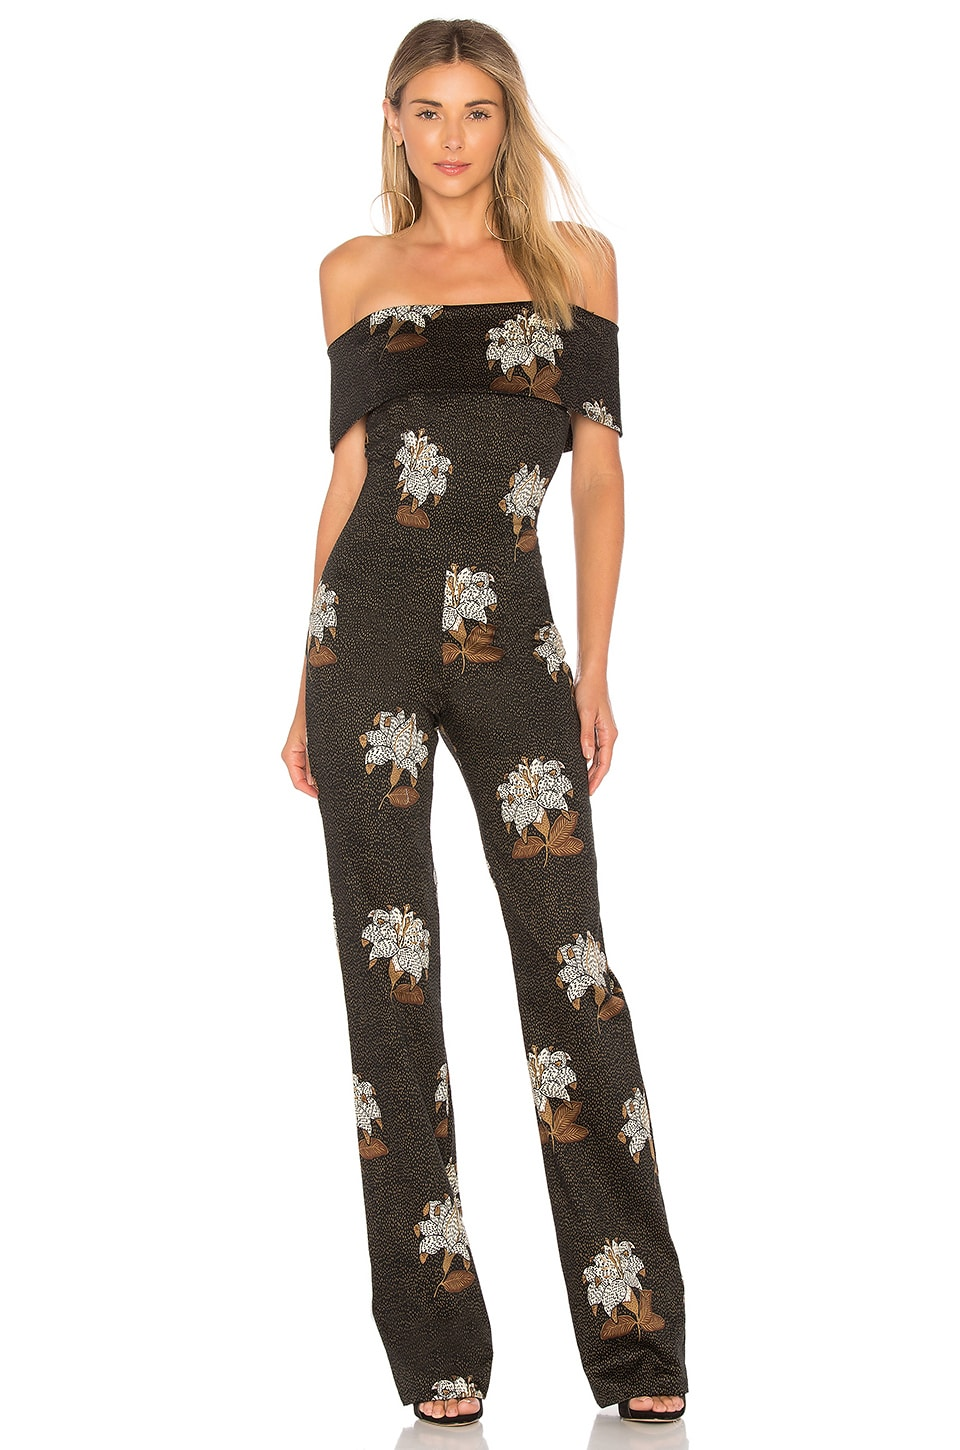 34b34b34f2a Shop This Product. Sinatra Jumpsuit